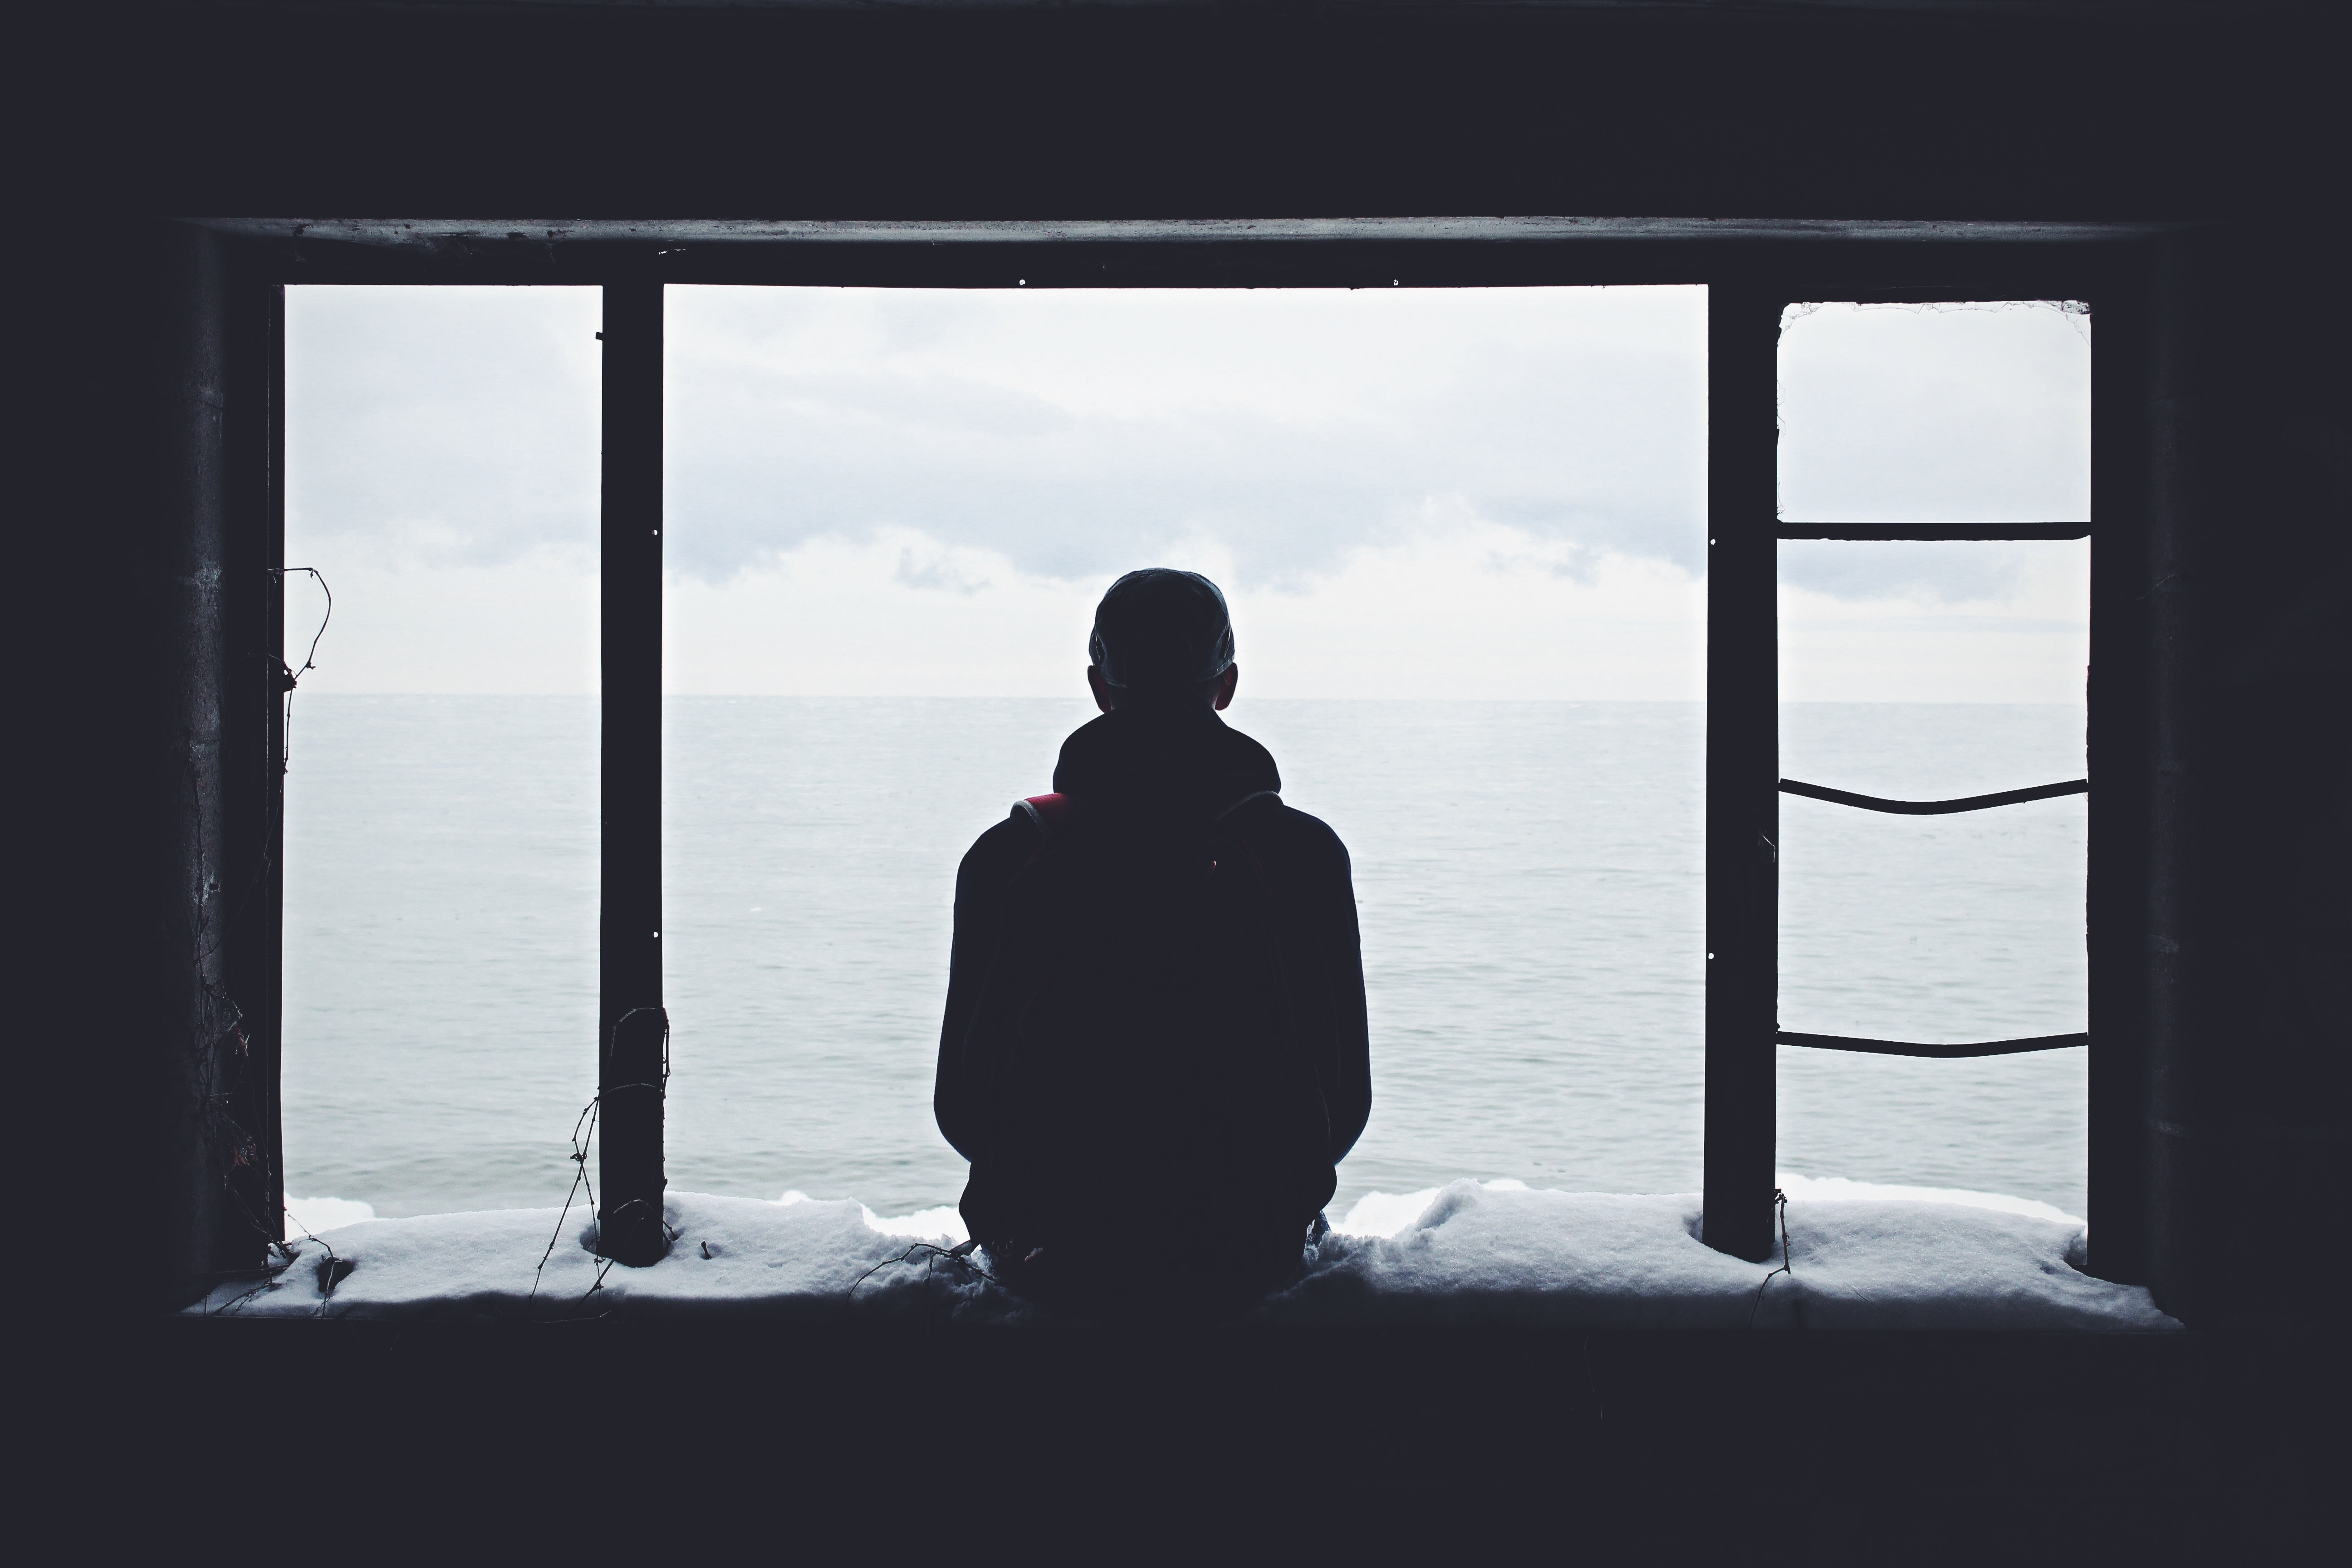 The silhouette of a person looking out of a window.